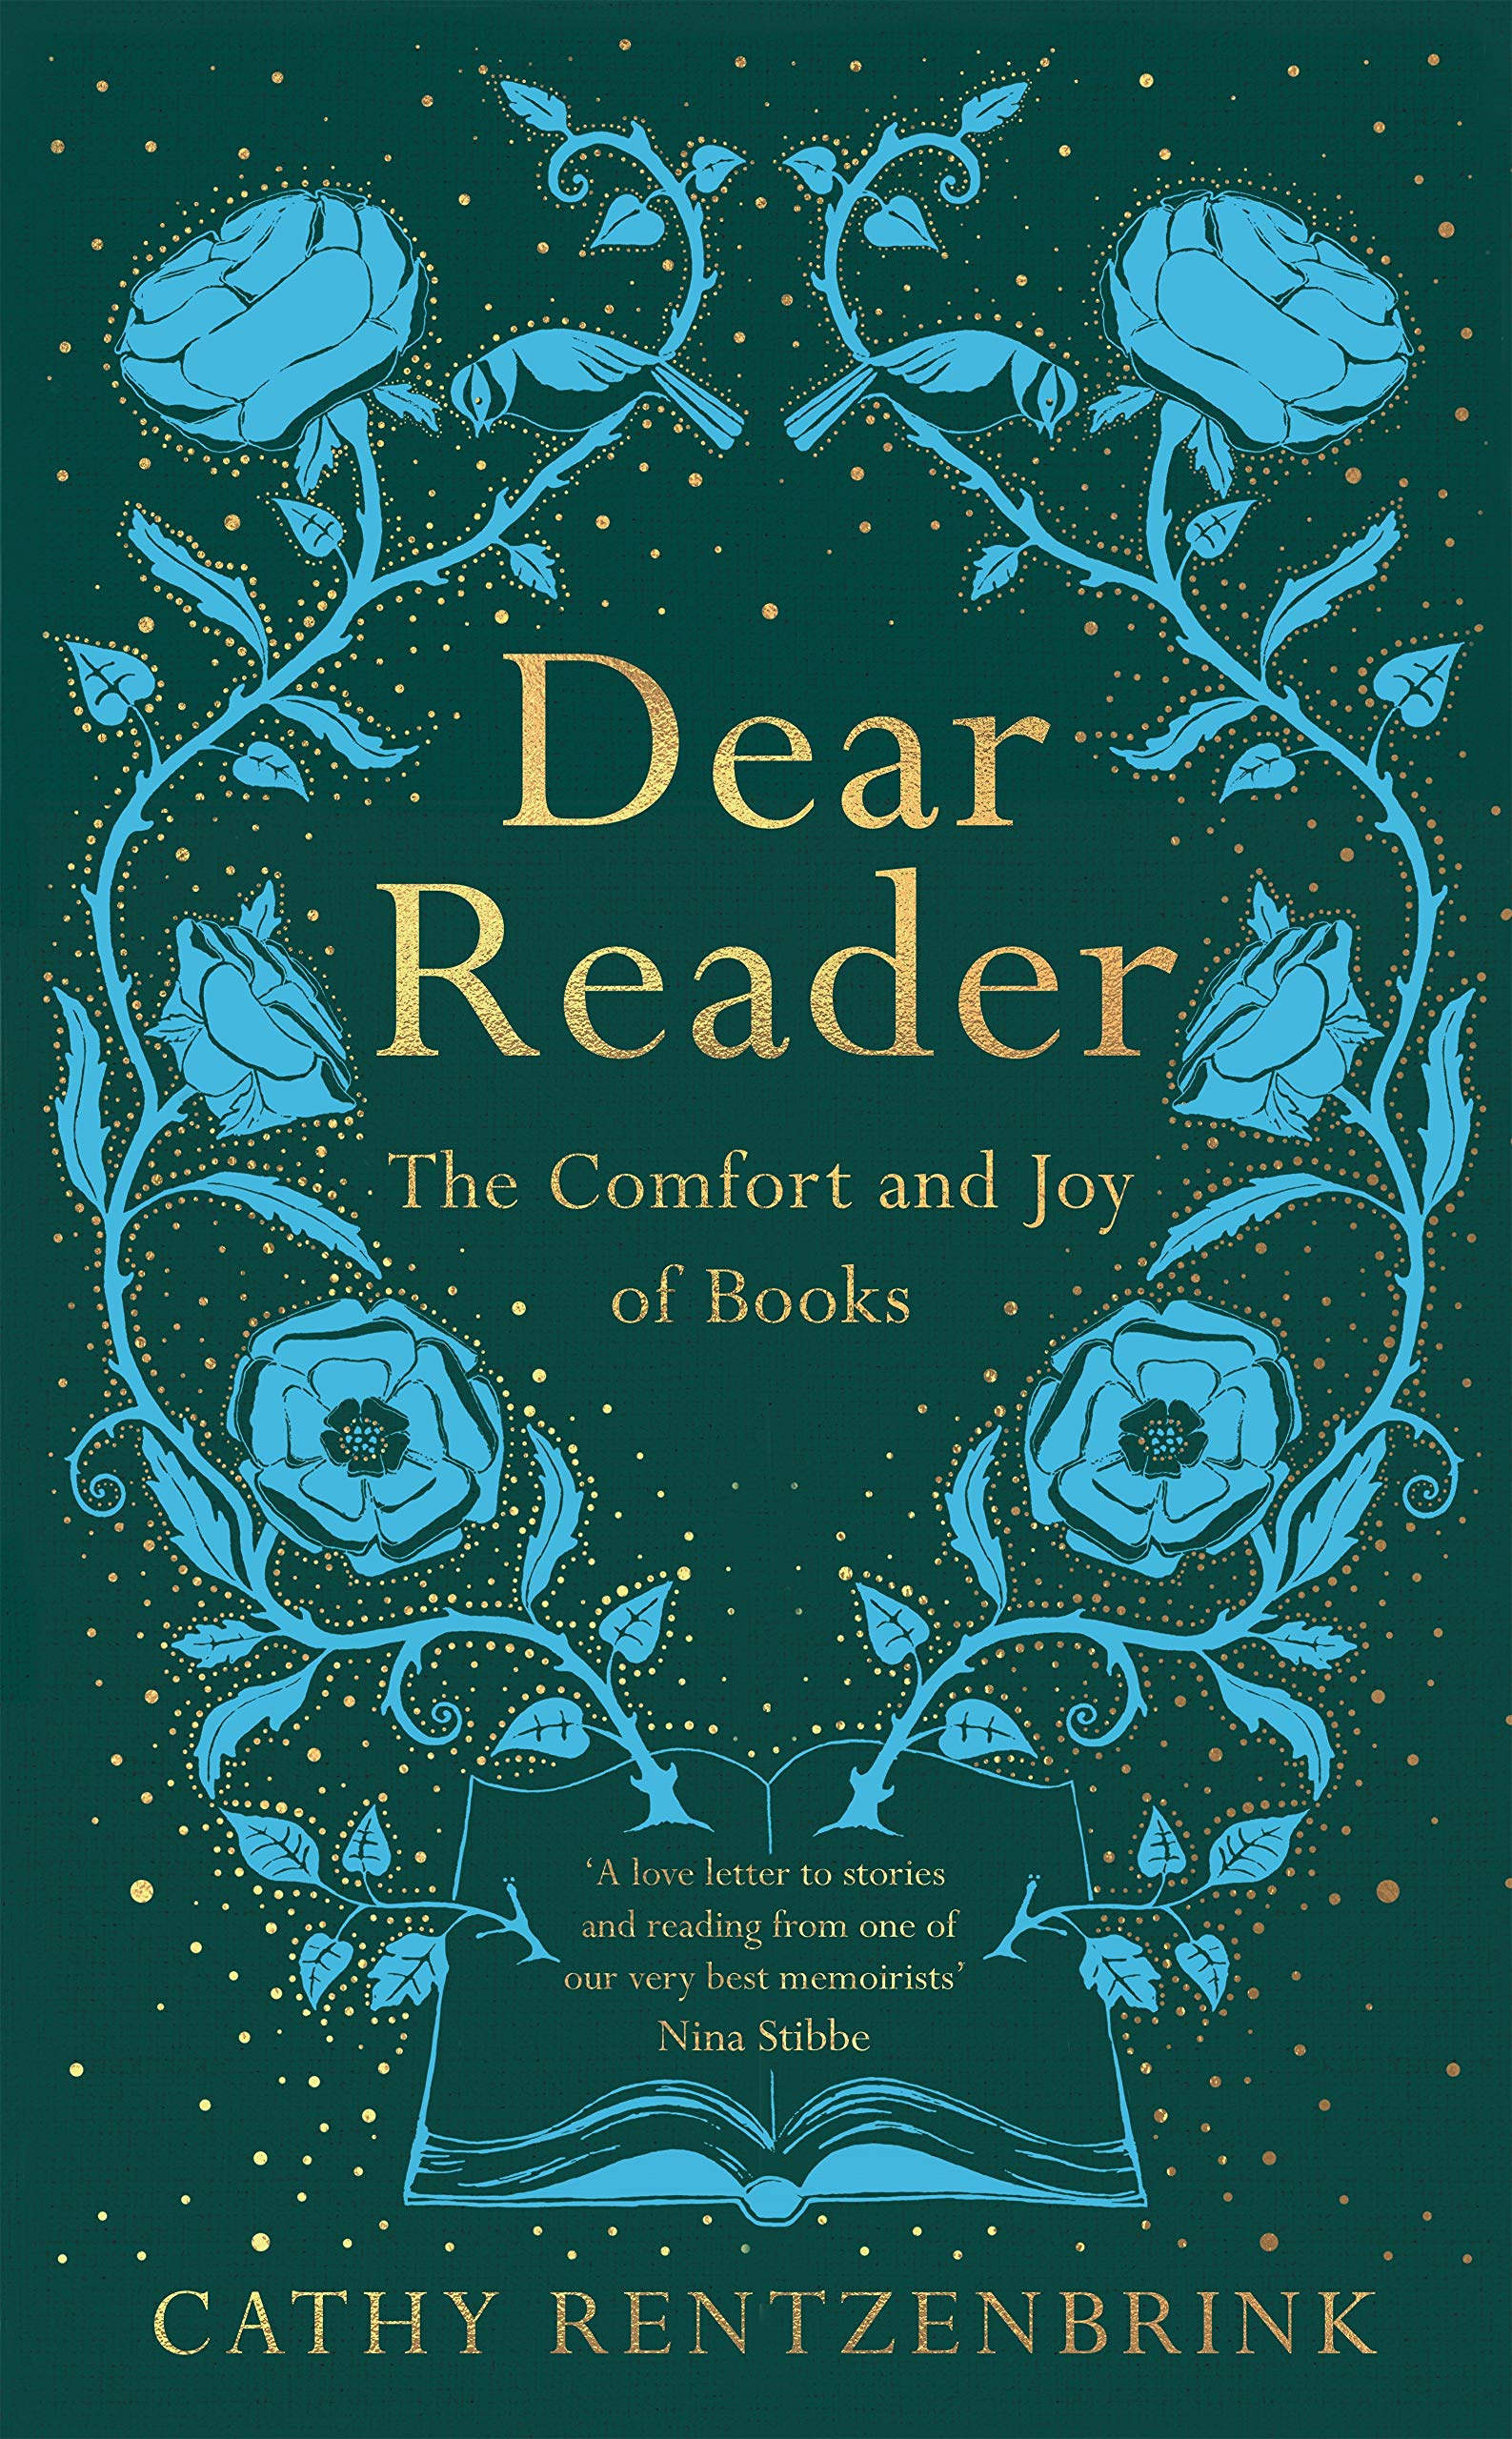 Dear Reader: The Comfort and Joy of Books: Amazon.co.uk: Rentzenbrink, Cathy:  9781509891528: Books